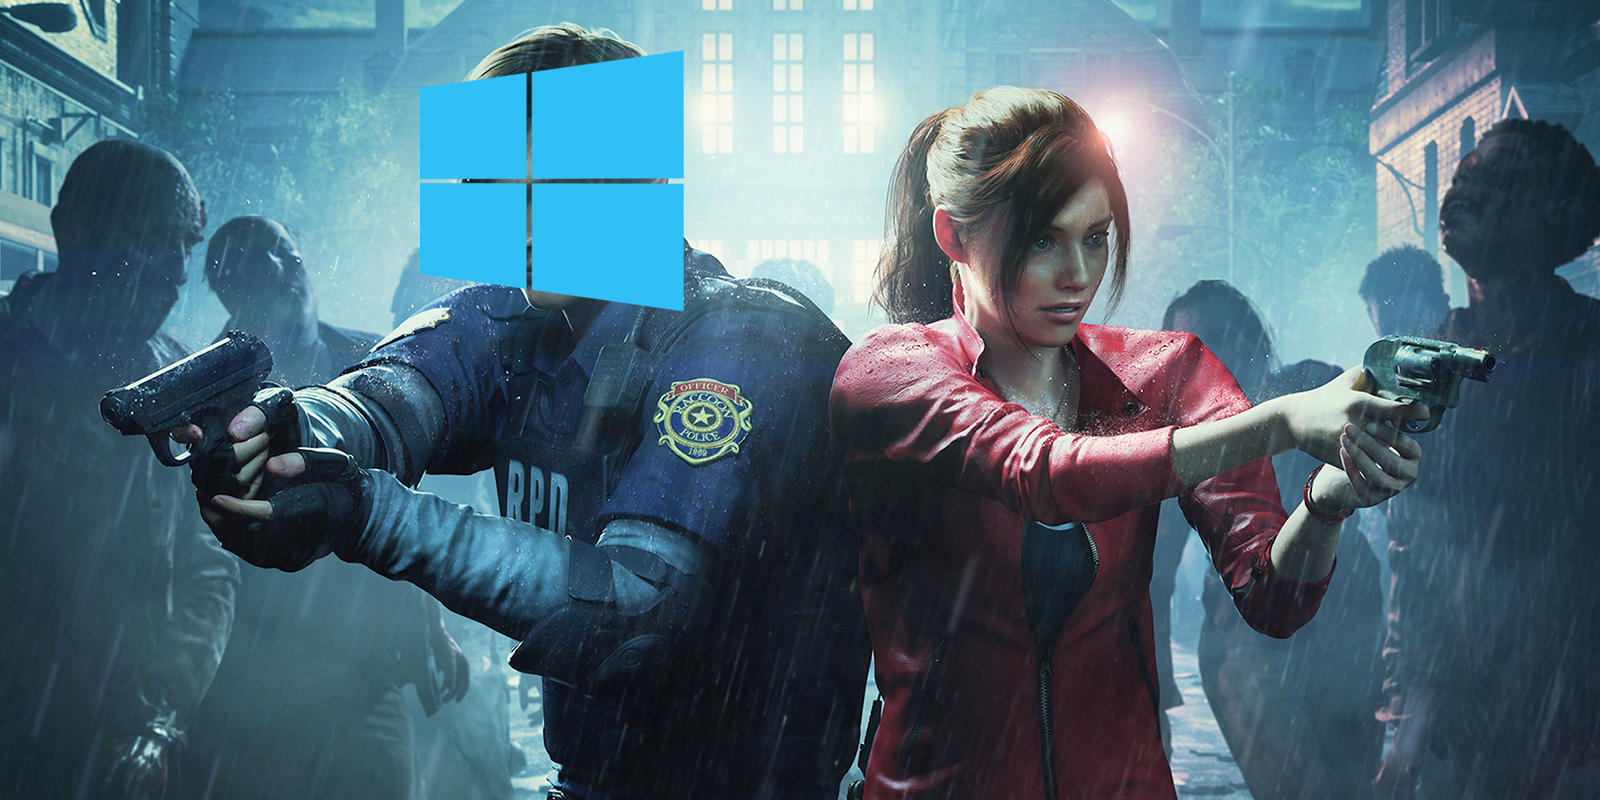 Fixed] Resident Evil 2 Windows 10 Black Screen Issue – Spiel